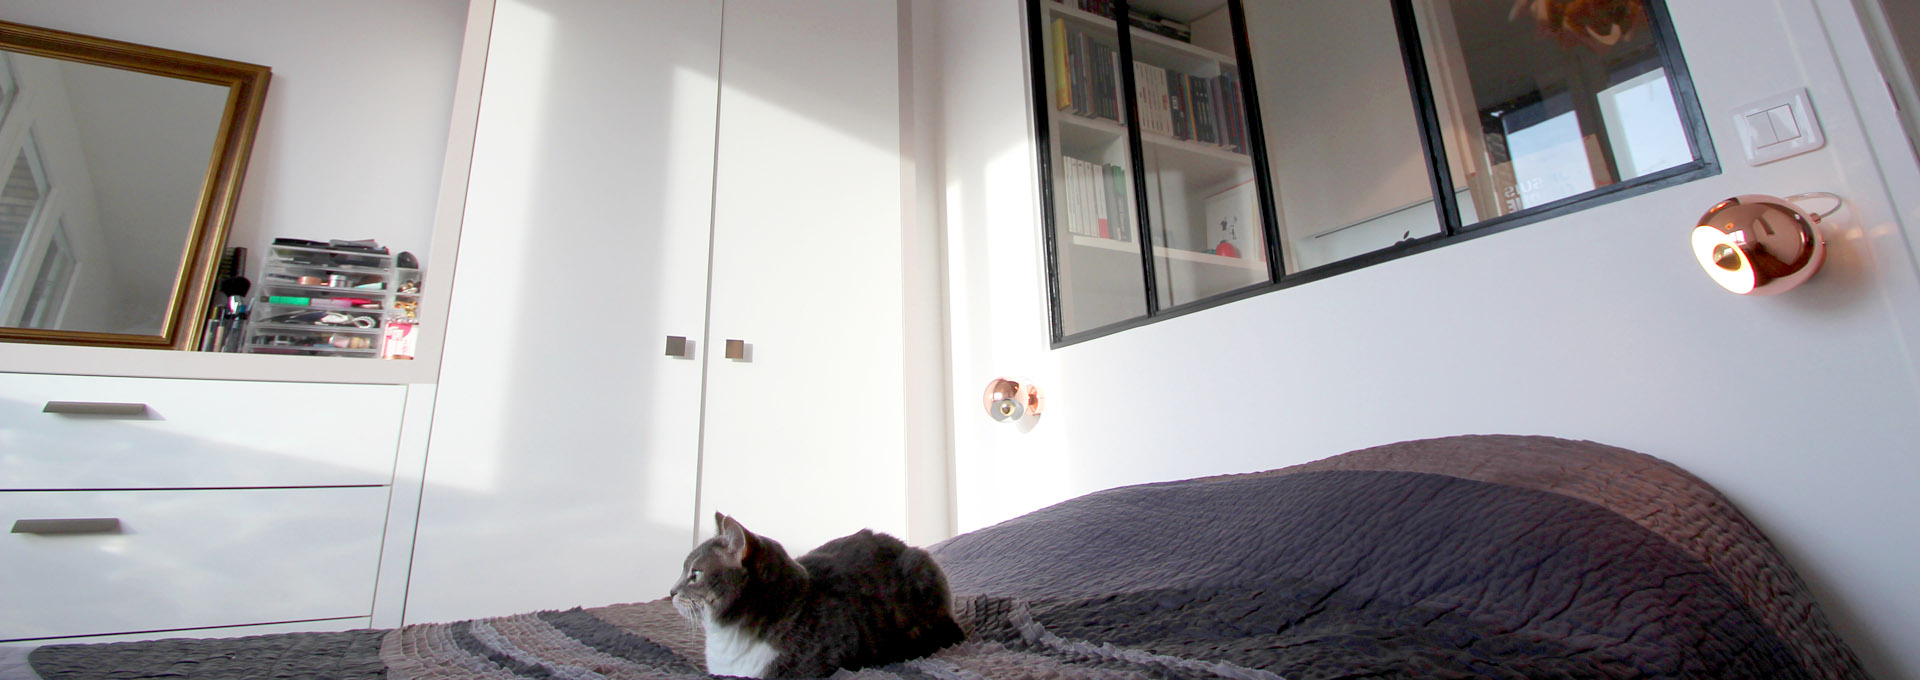 P-Agence-Avous-chat-lit-verriere-amenagement-mobilier